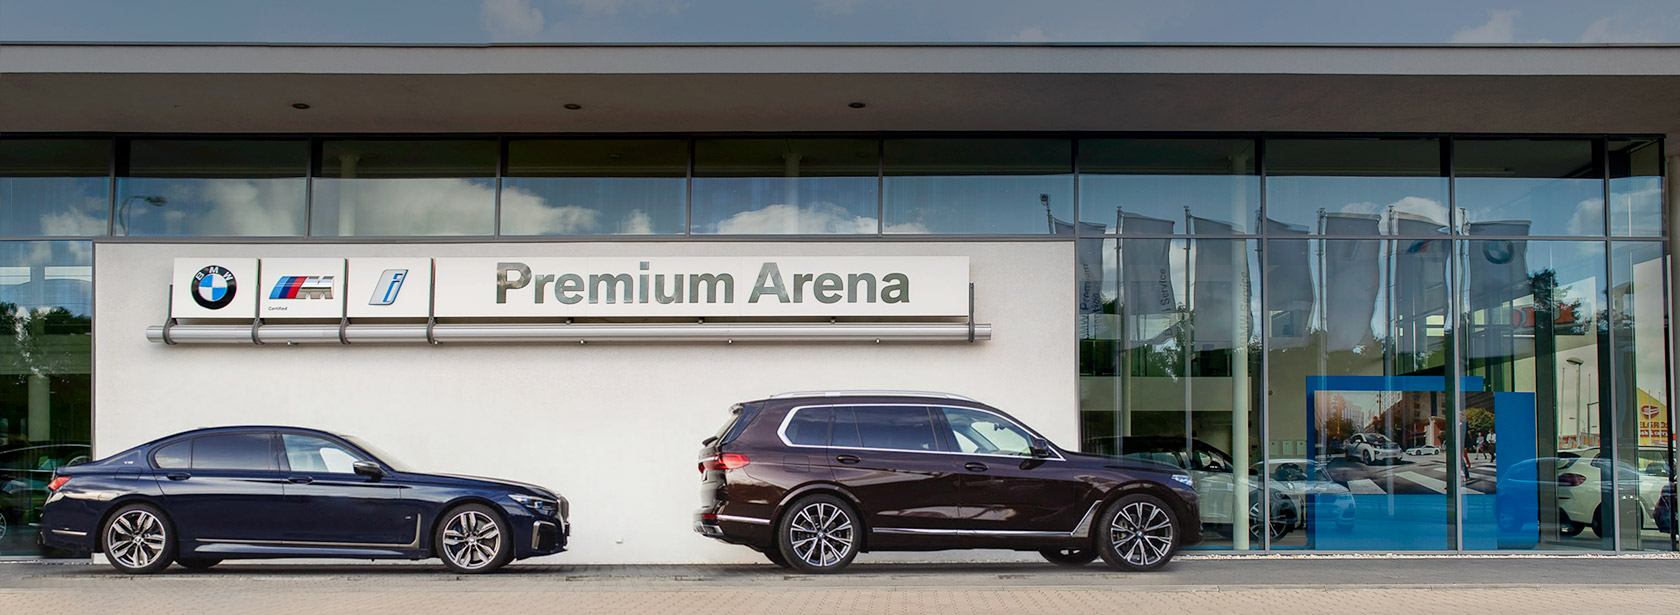 Salon Dealer BMW Premium Arena Łódź.